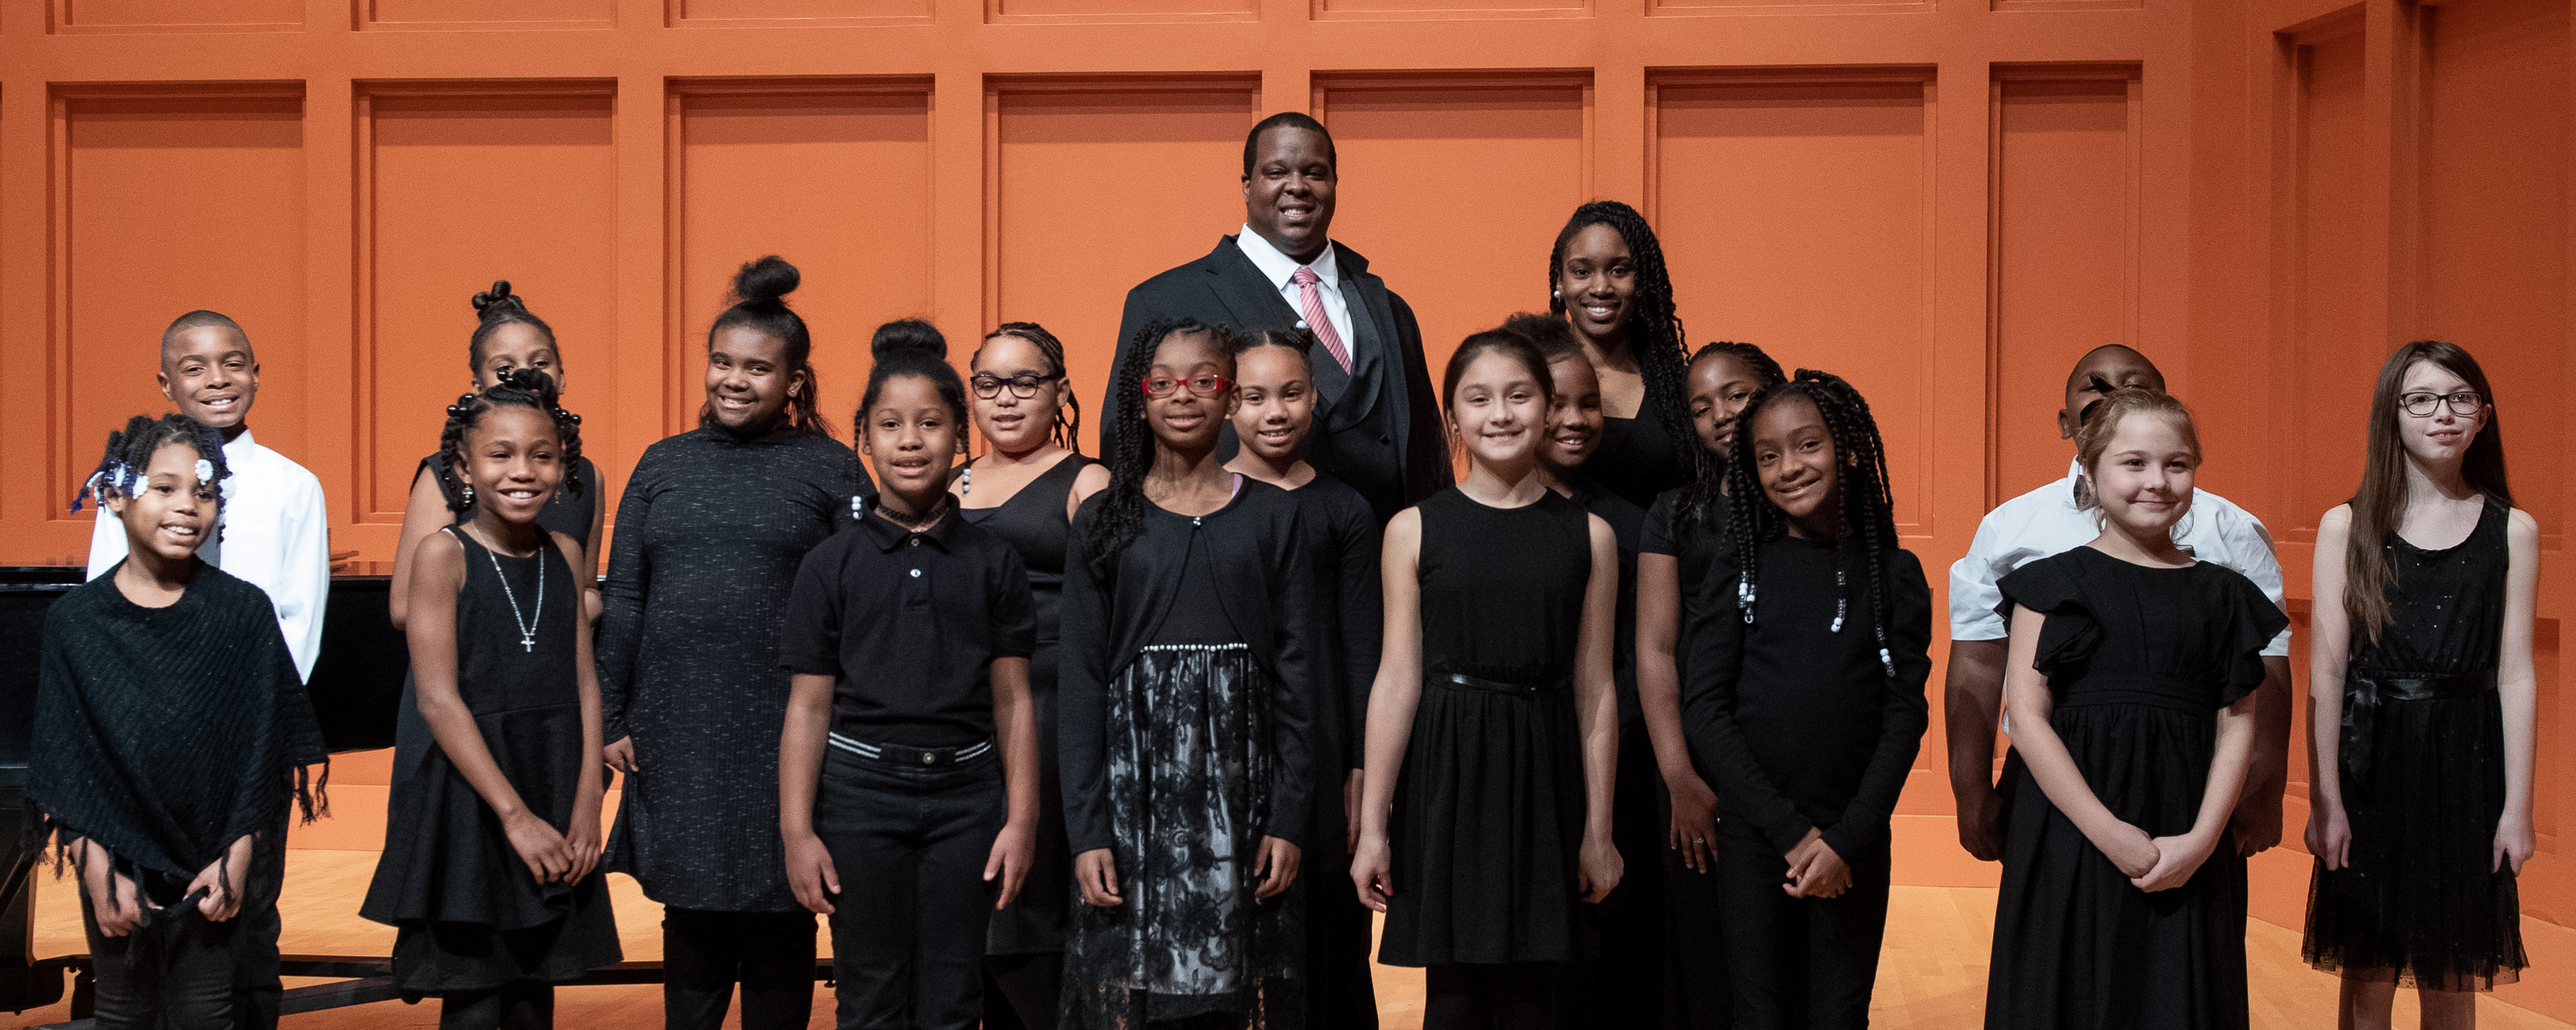 Joshua Conyers and student choir on stage